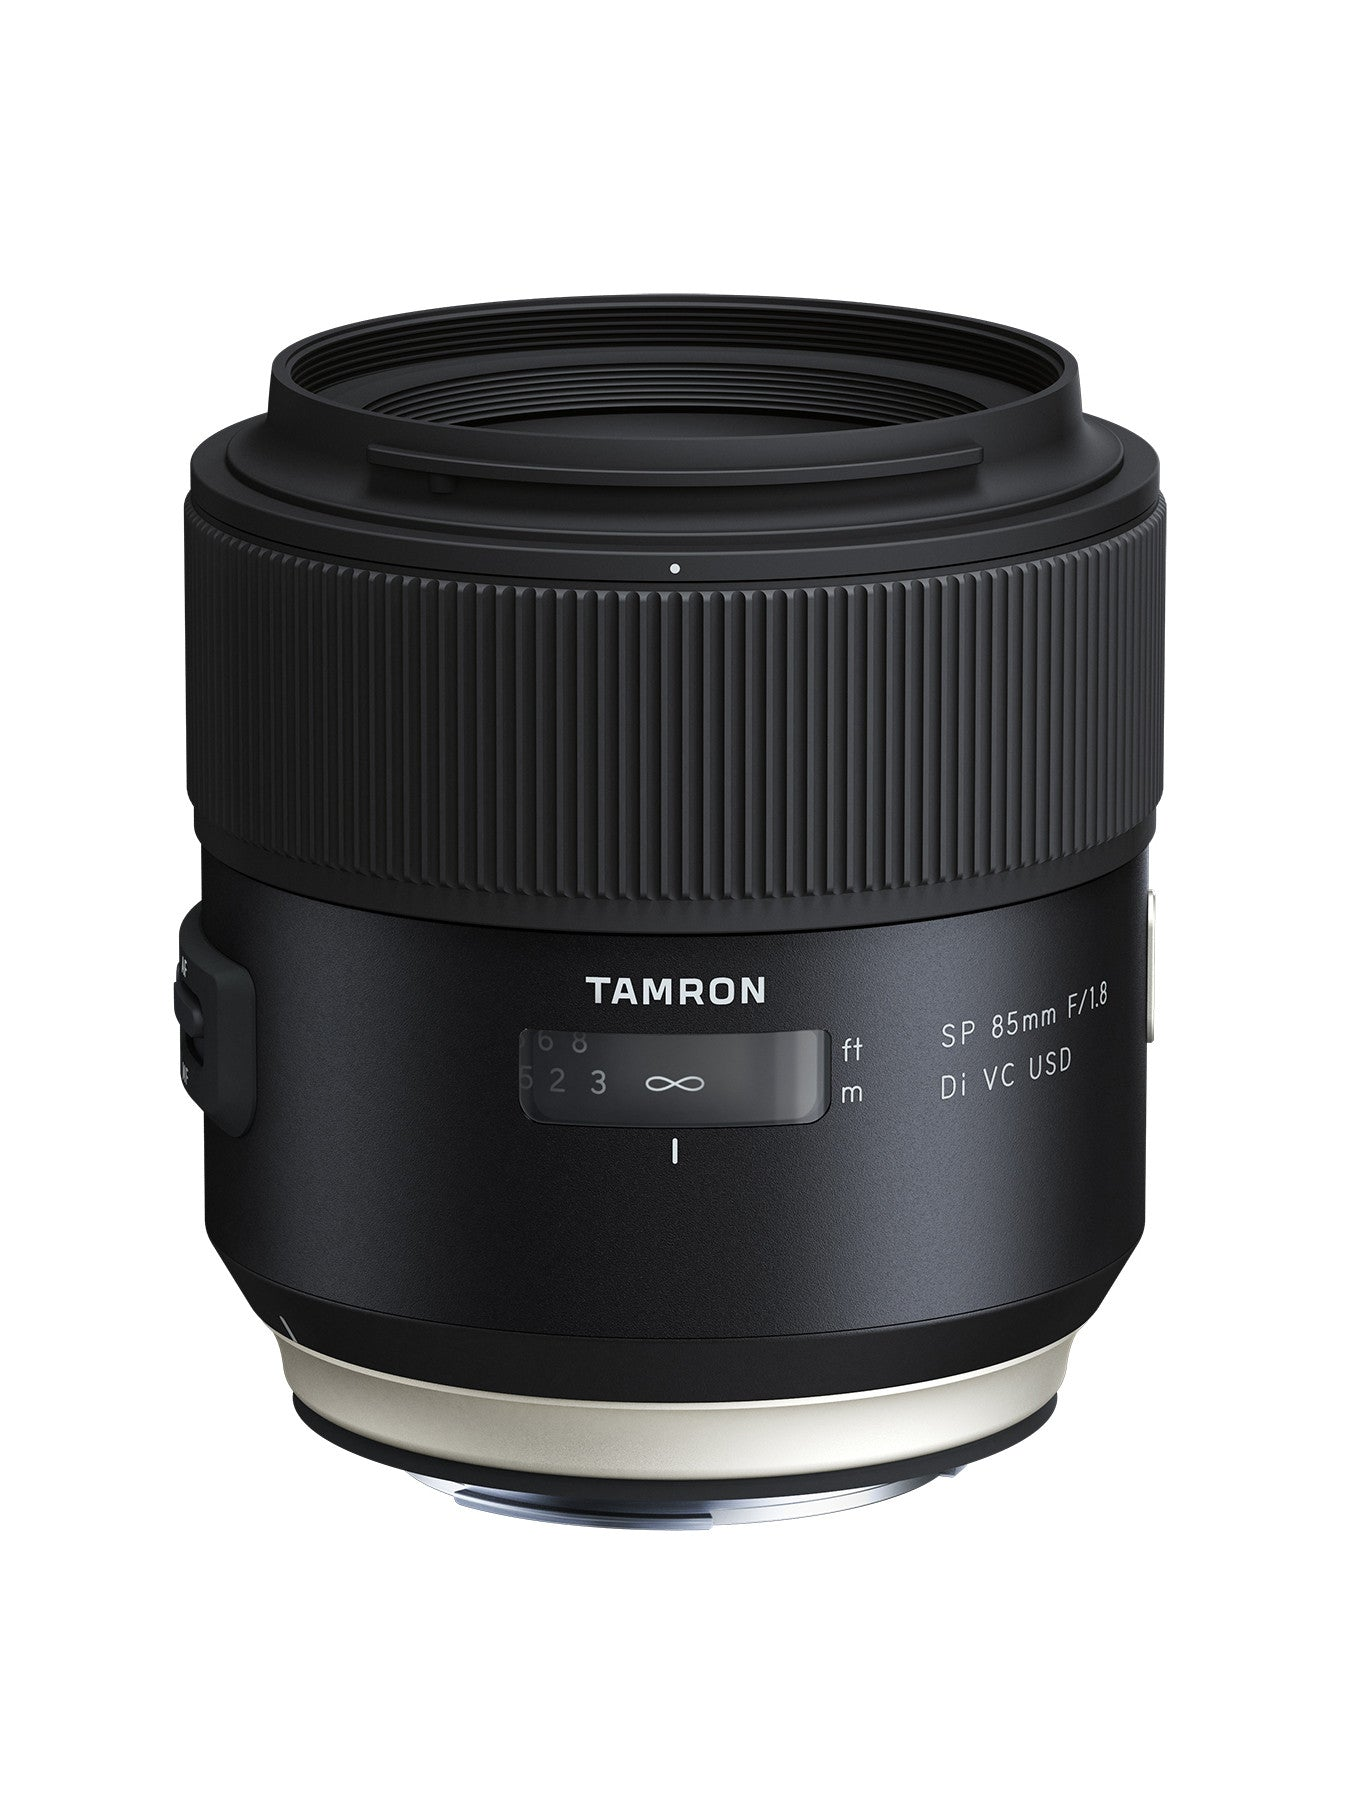 Tamron SP 85mm F/1.8 Di VC USD - Canon Mount